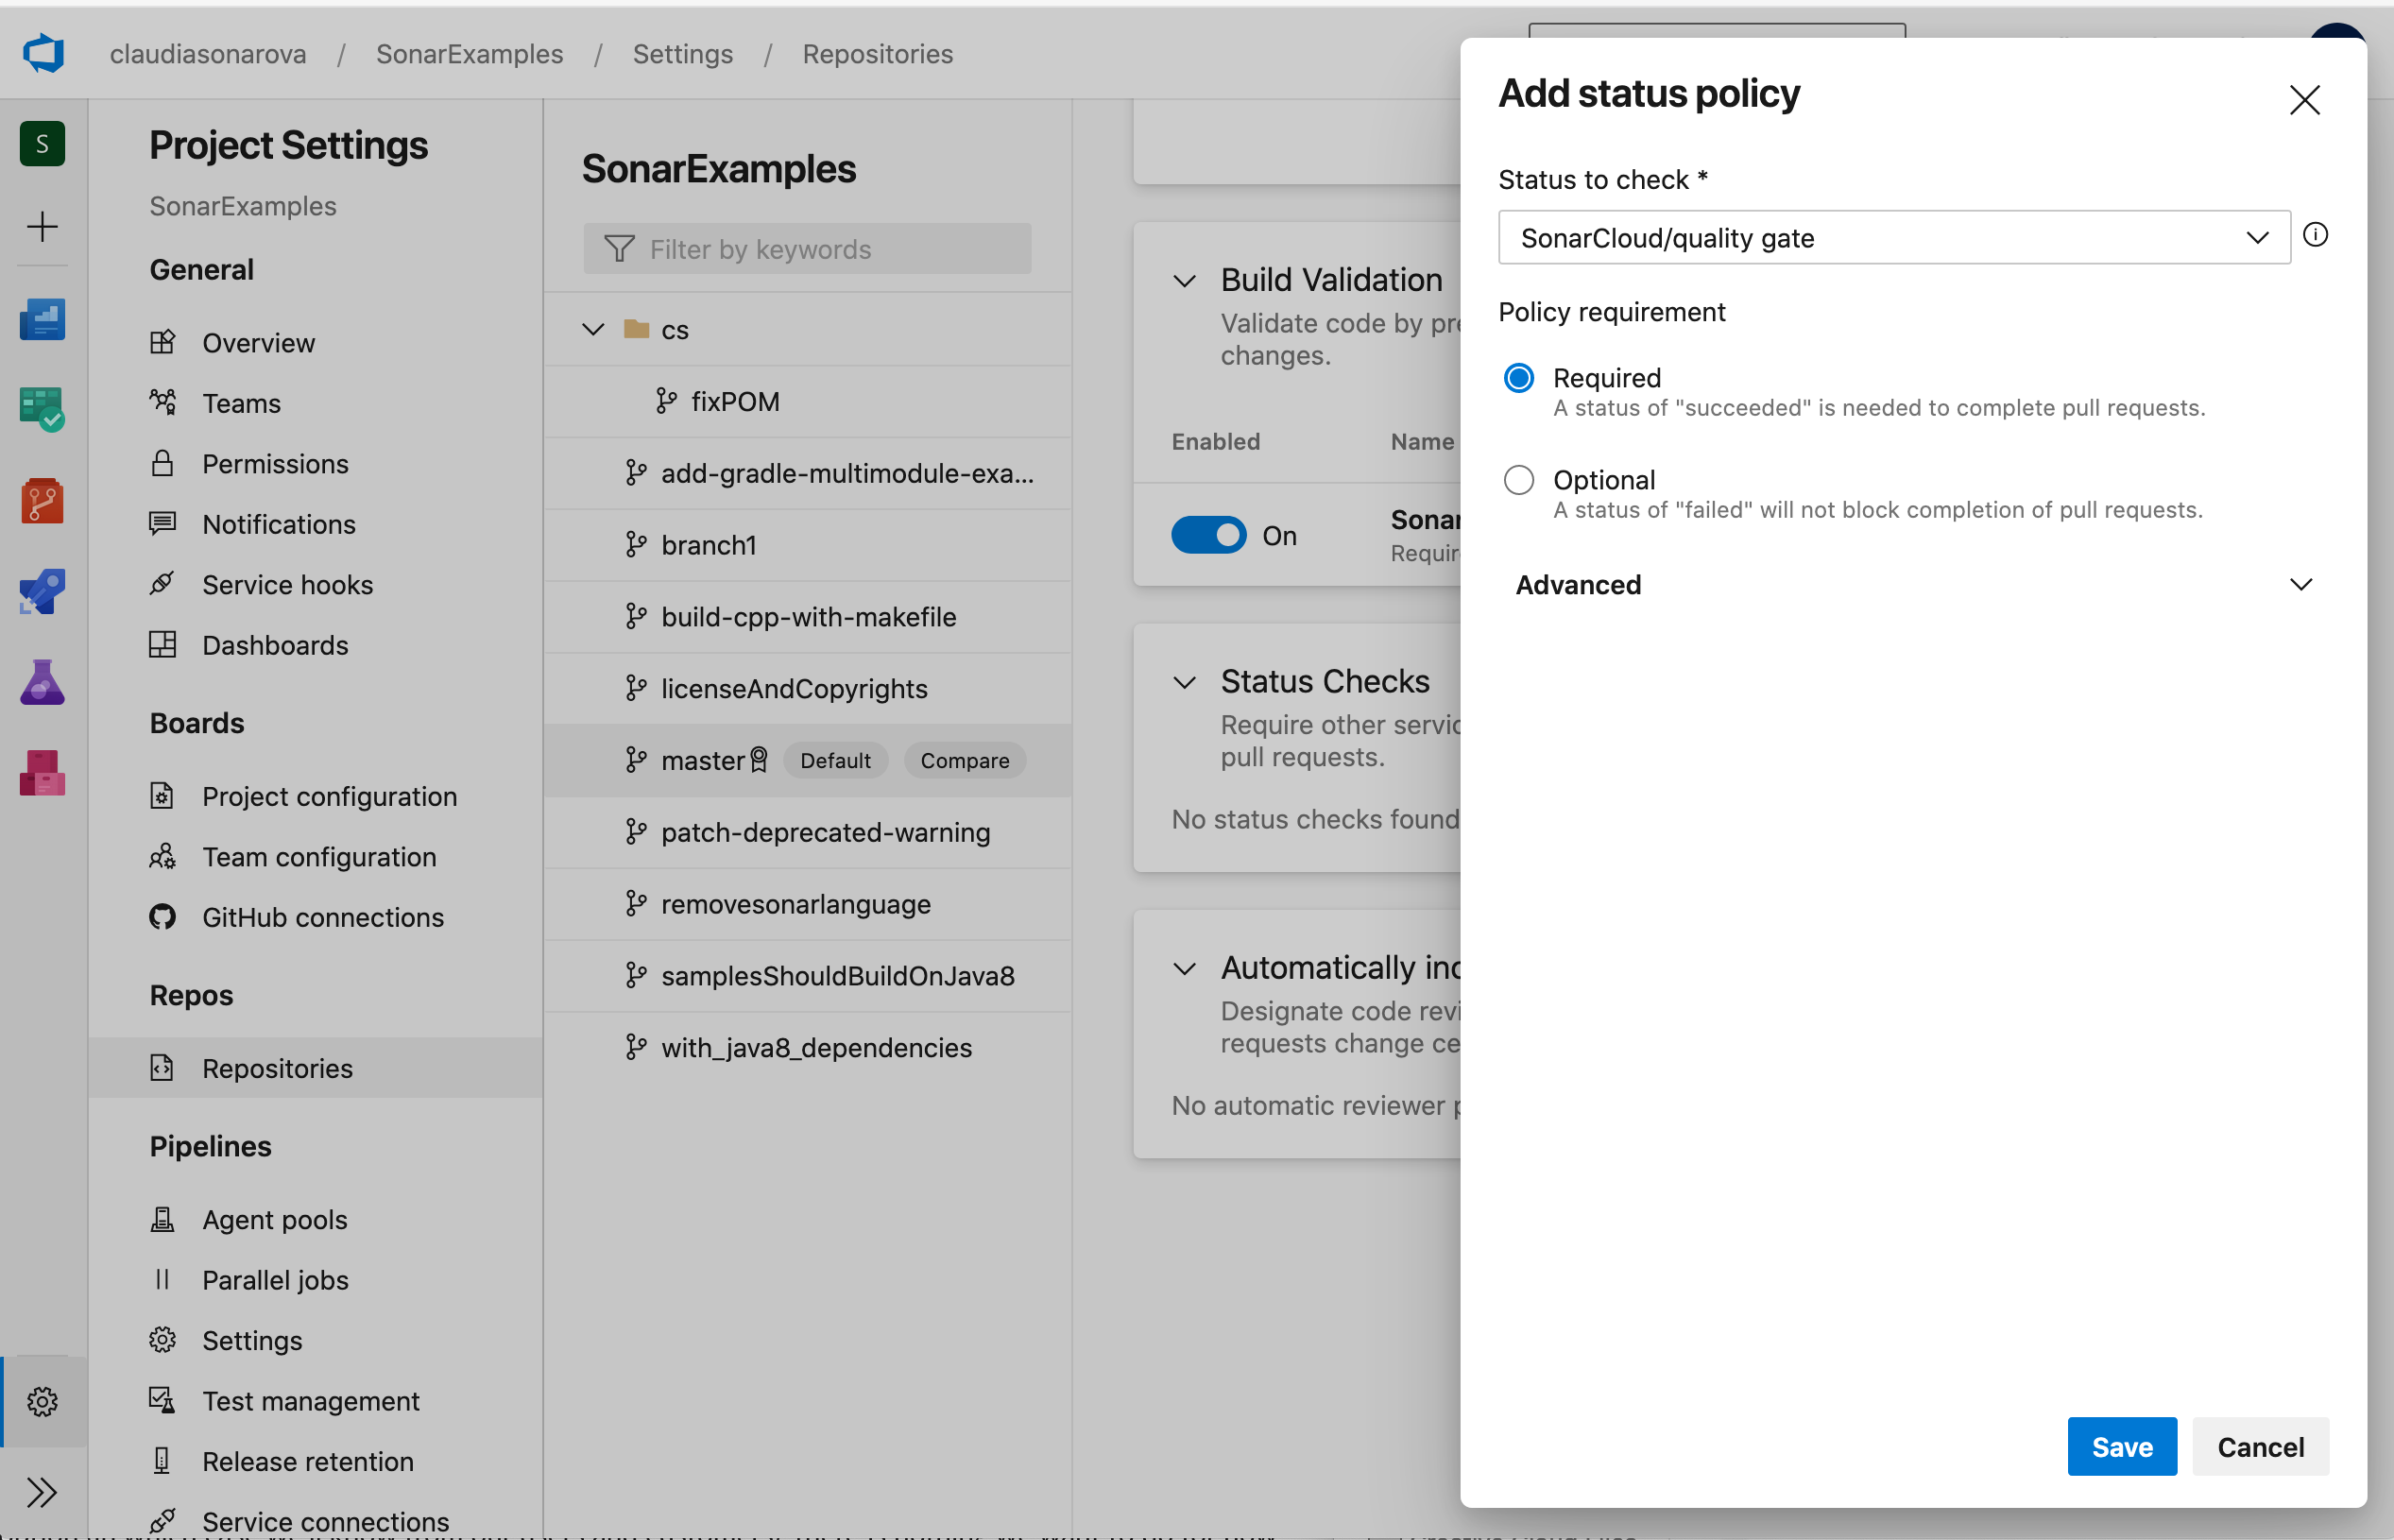 vsts_status_policy_add